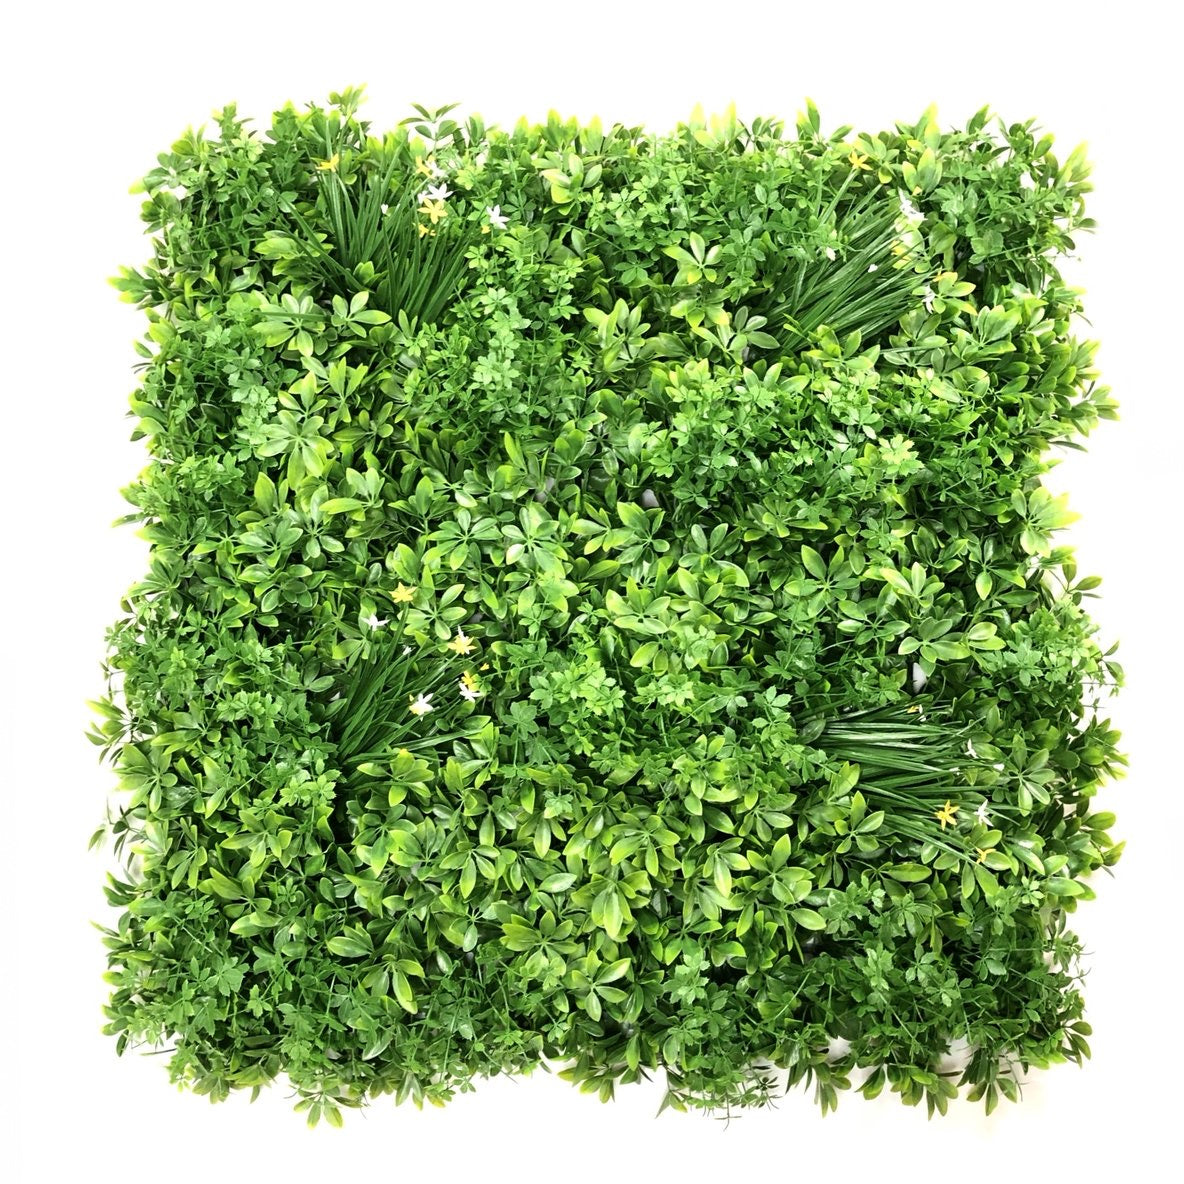 Decograss Amazonia Green Wall  (box / 6pcs) - 66.66 sqf per 24 pieces